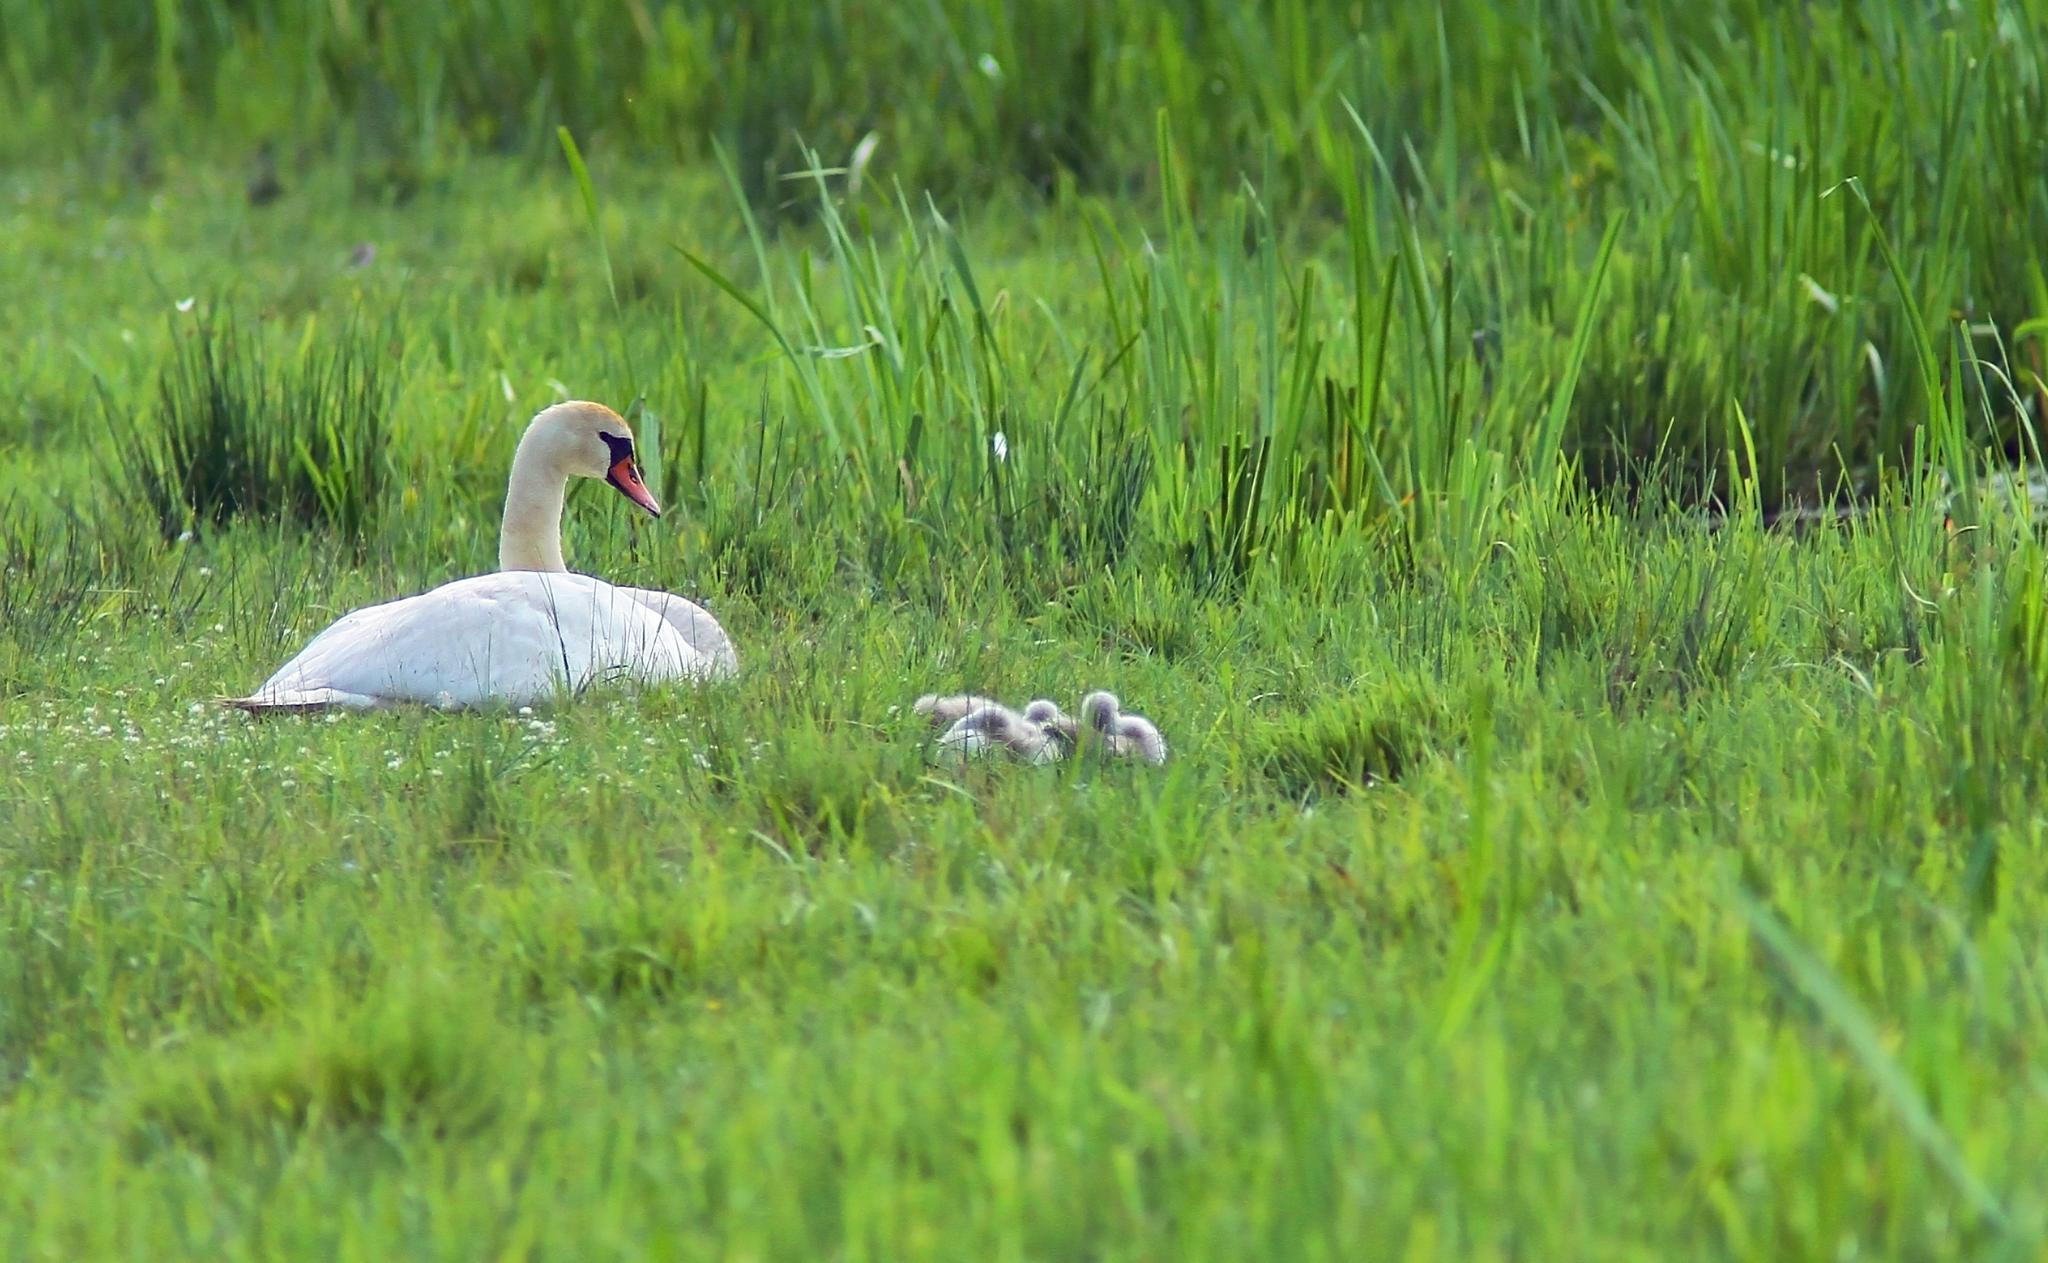 Mother swan with young cygnets by SRFOTO